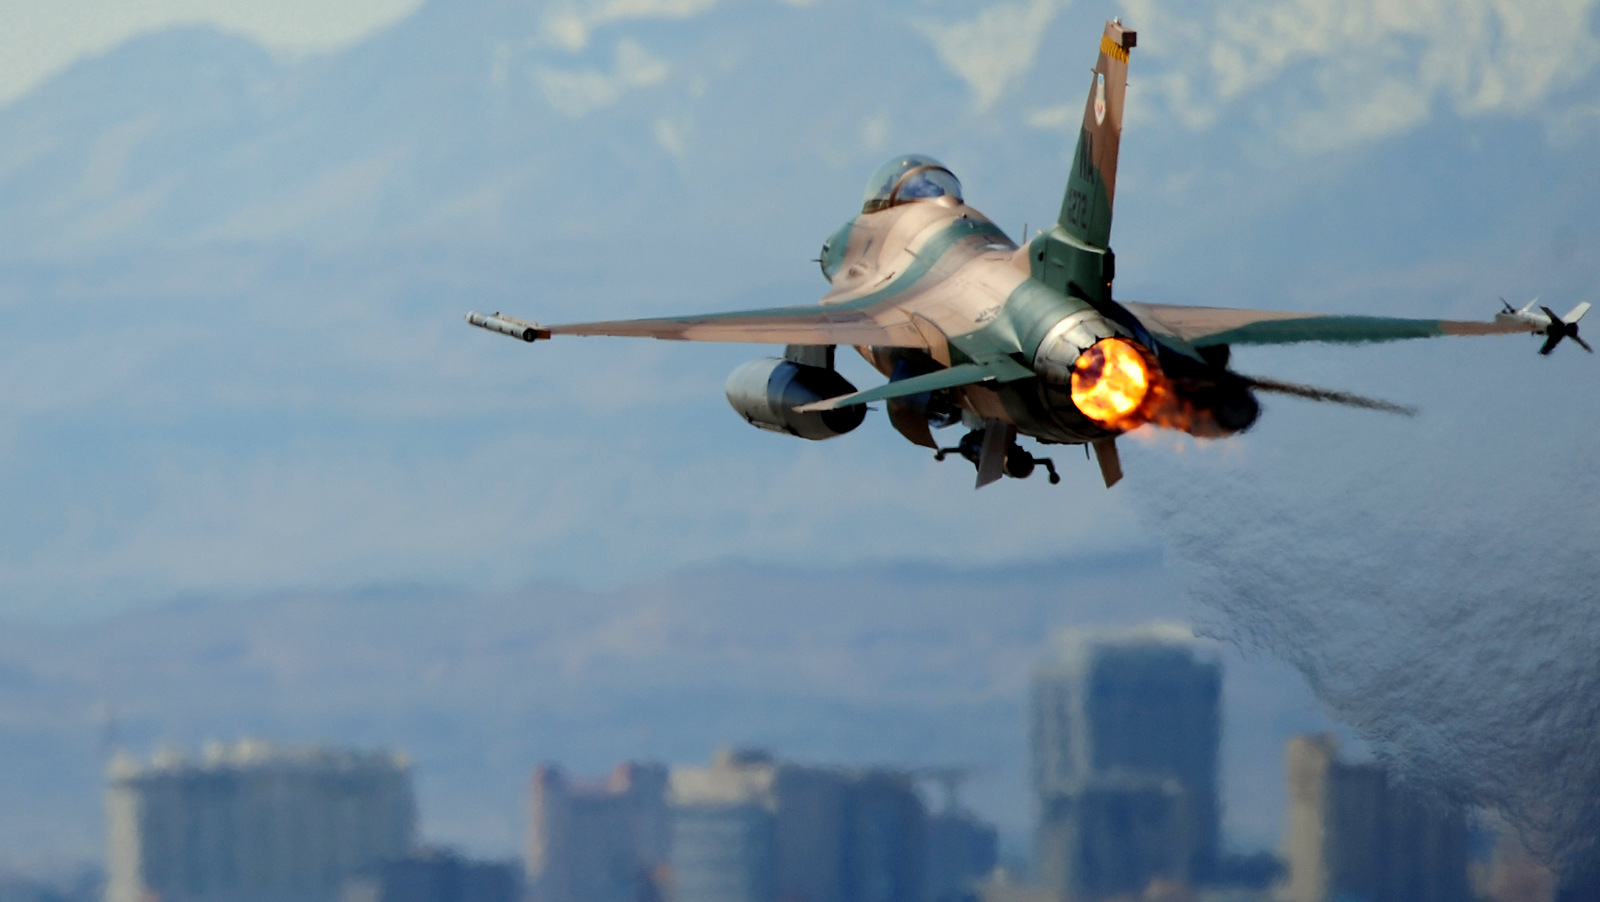 NELLIS AIR FORCE BASE, NEV. -- An F-16 Aggressor takes off from the Nellis flight line during a Red Flag Exercise, March 3, 2010. Red Flag is a realistic combat training exercise involving the air forces of the United States and its allies. The exercise is conducted on the 15,000-square-mile Nevada Test and Training Range, north of Las Vegas.   (U.S. Air Force Photo by Staff Sgt. William P. Coleman/RELEASED)